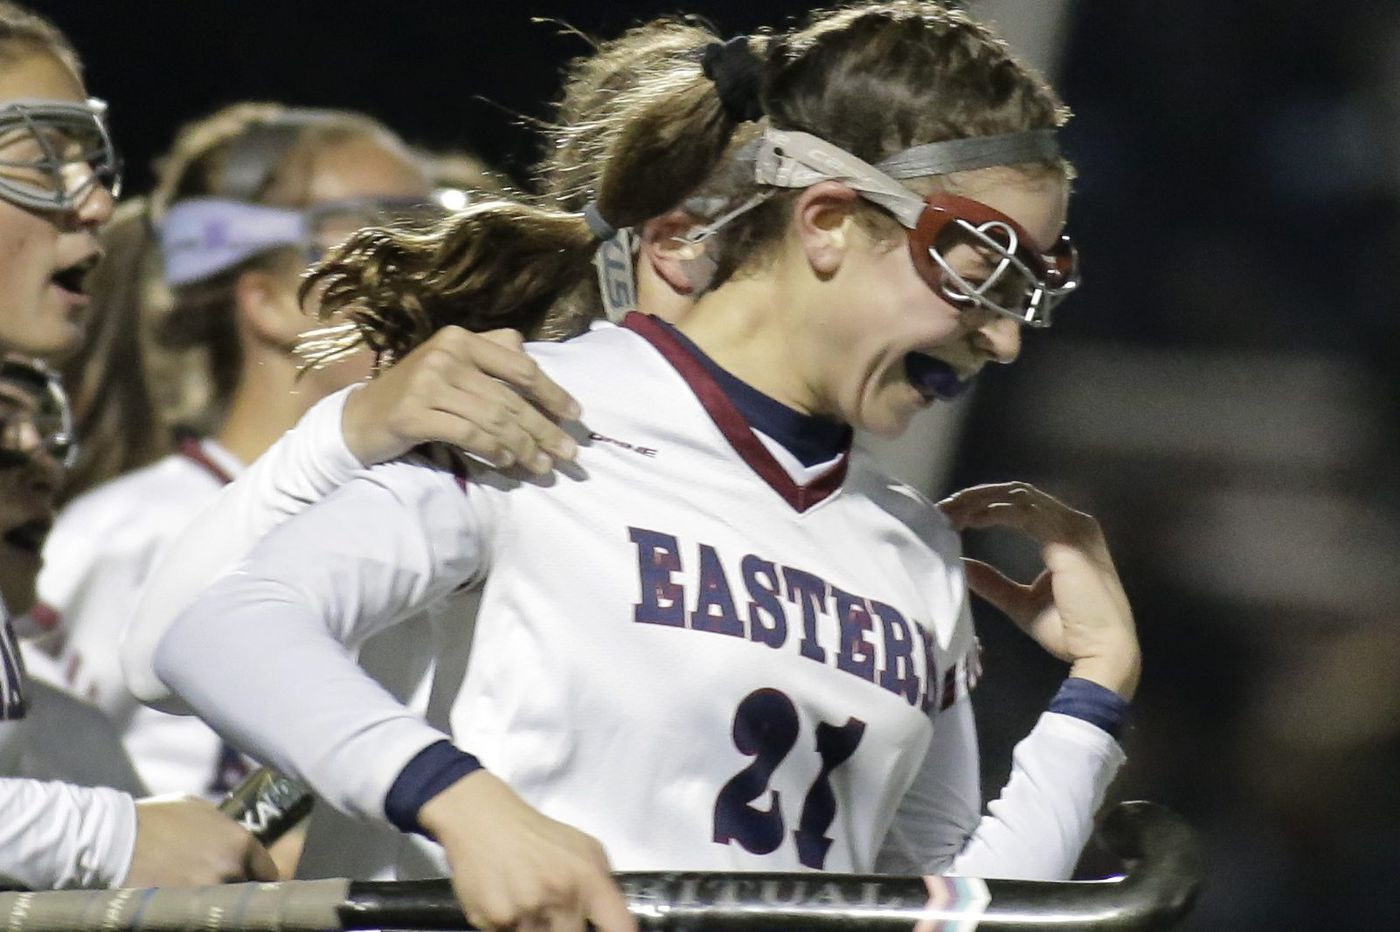 Monday's South Jersey roundup: Eastern field hockey overpowers Cherry Hill East